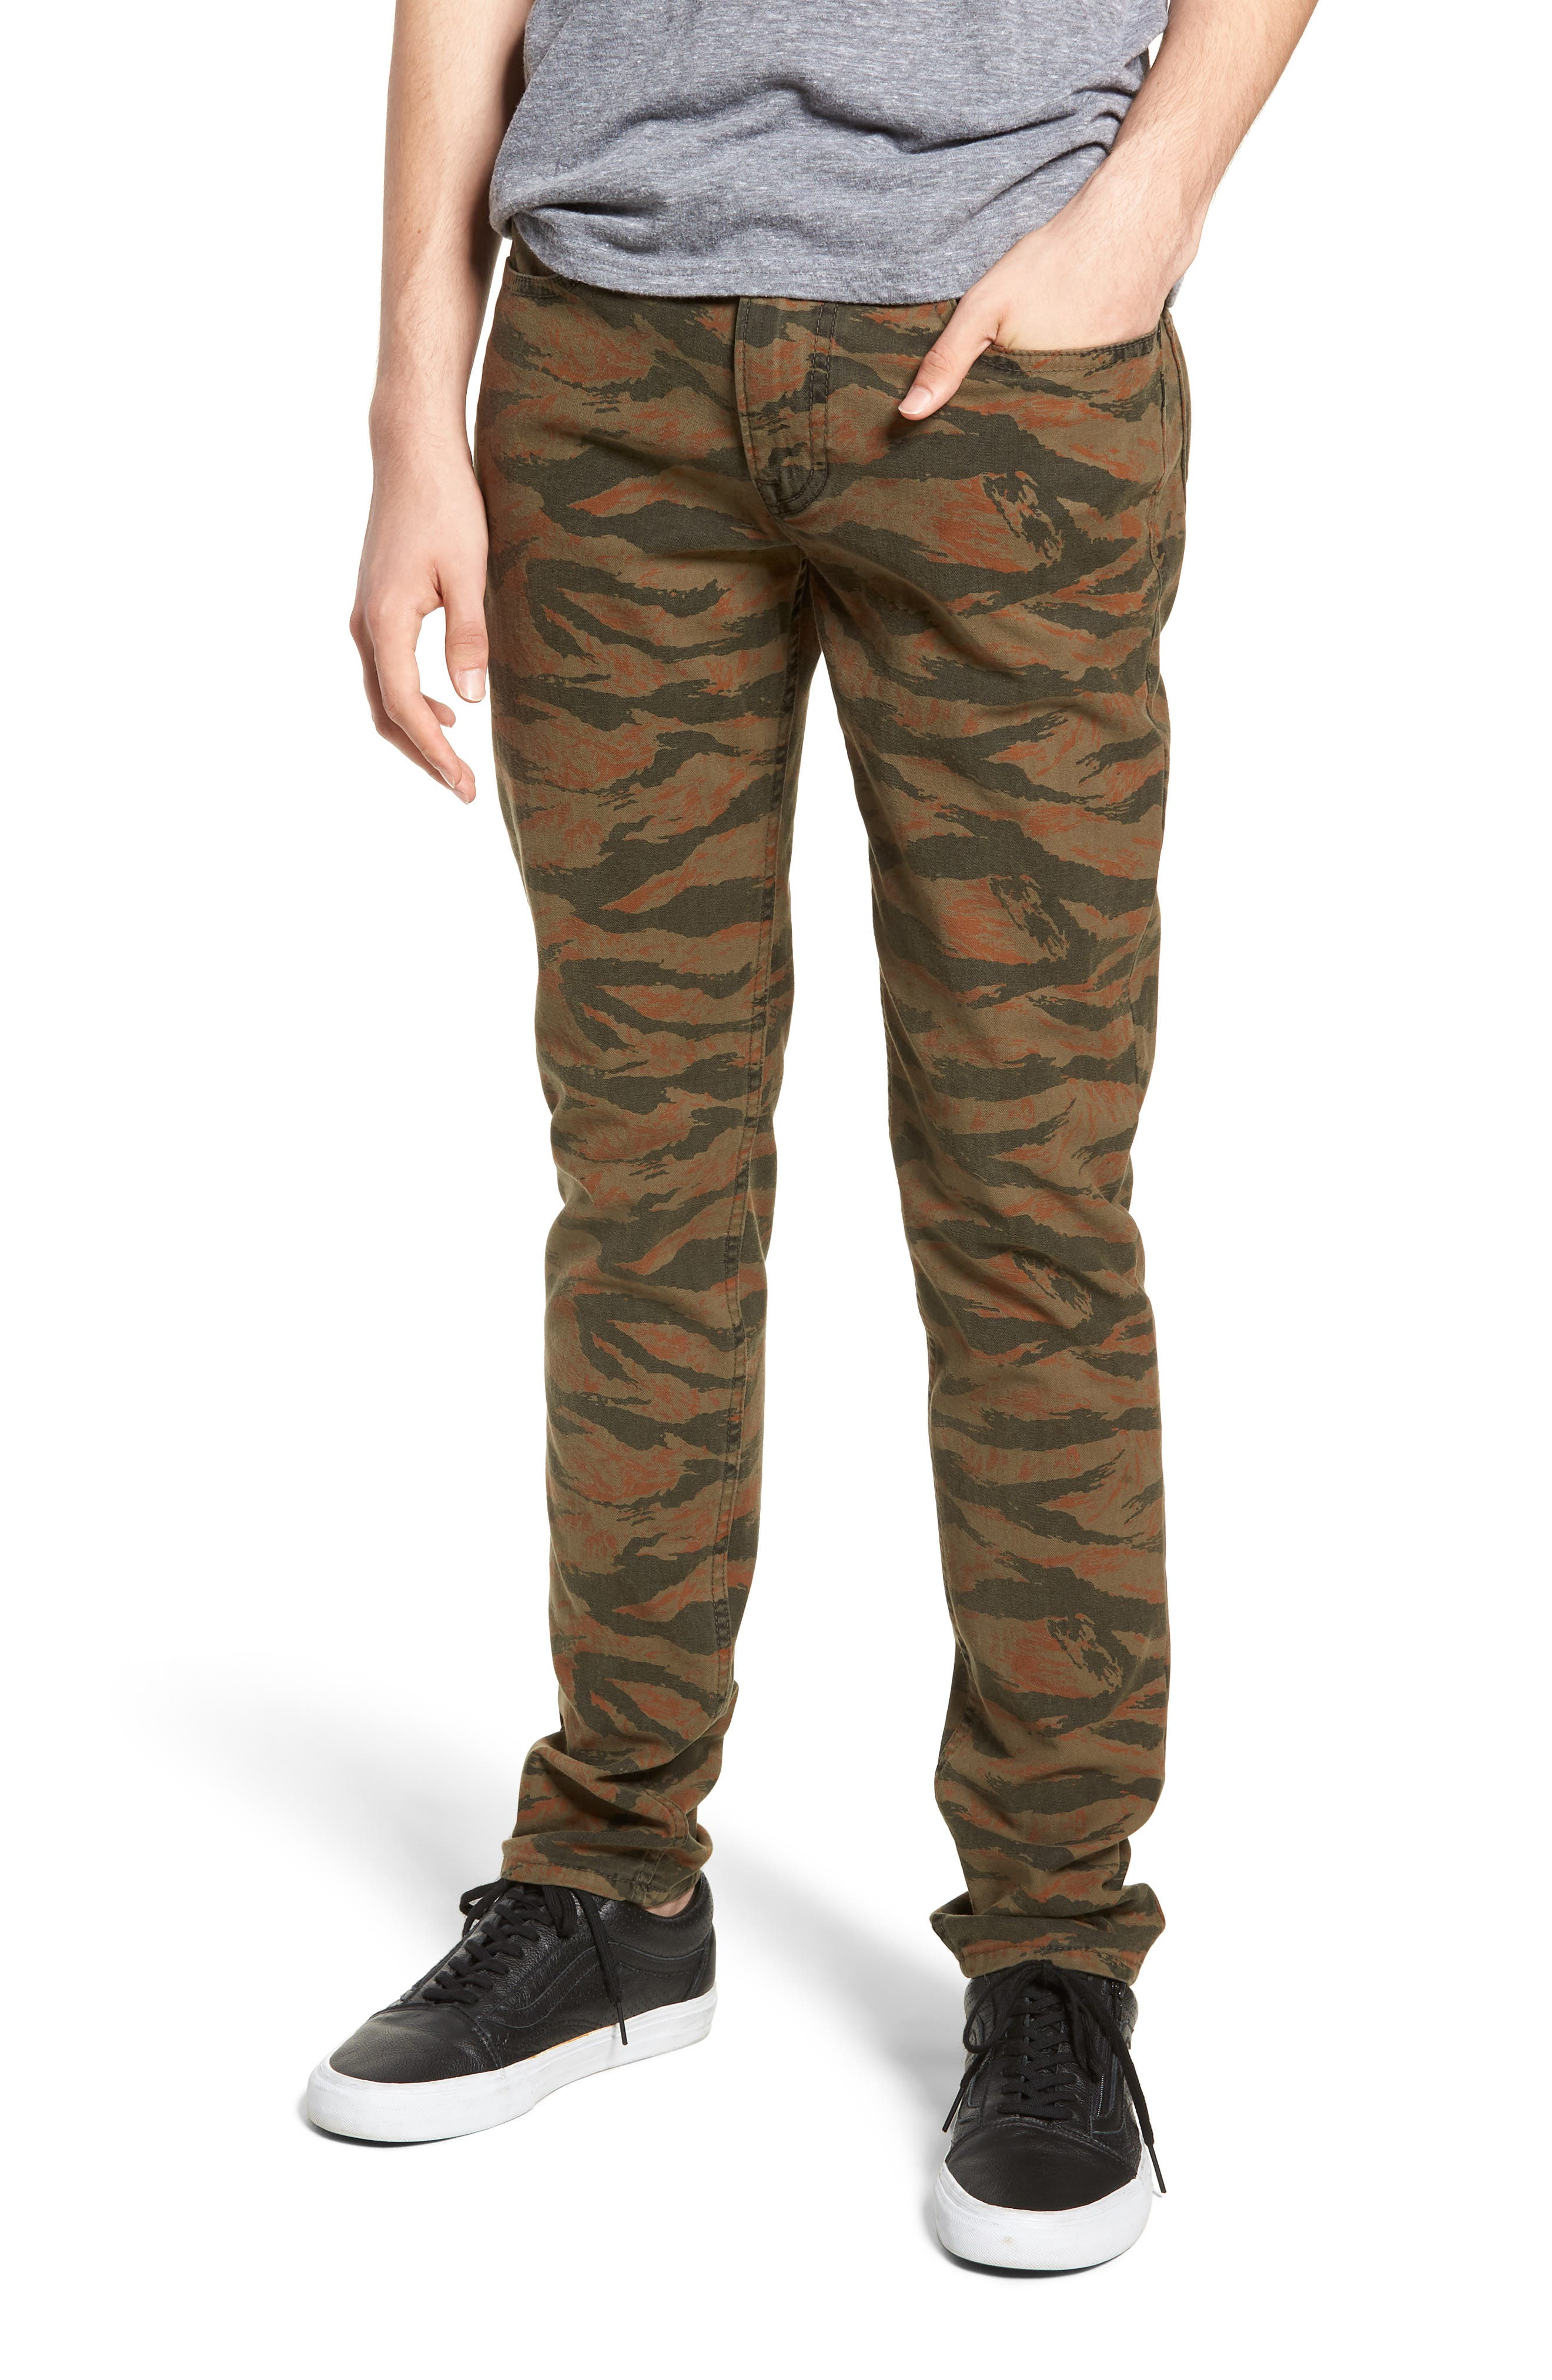 Axl Skinny Fit Jeans,                             Main thumbnail 1, color,                             TIGER CAMO